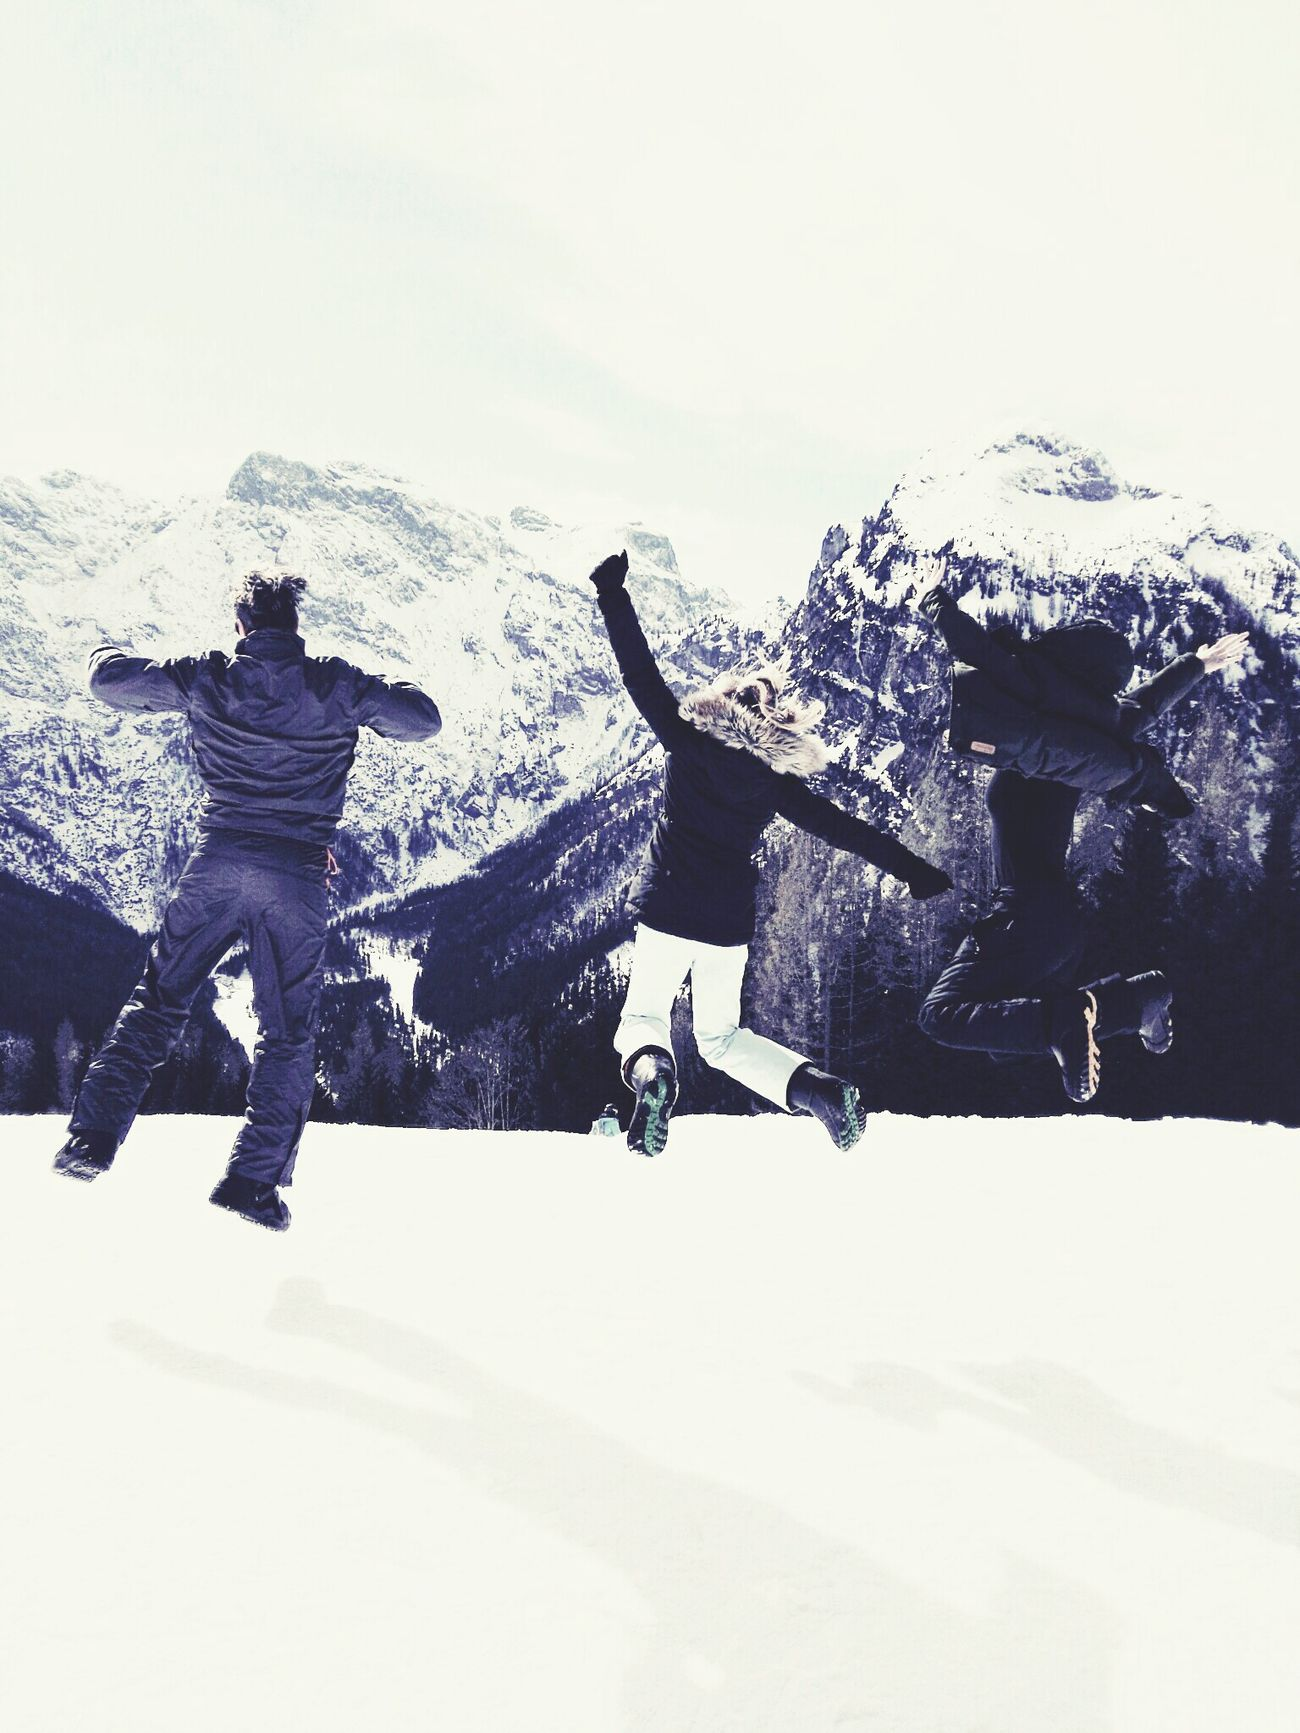 Fun Pertisau Jumpshot